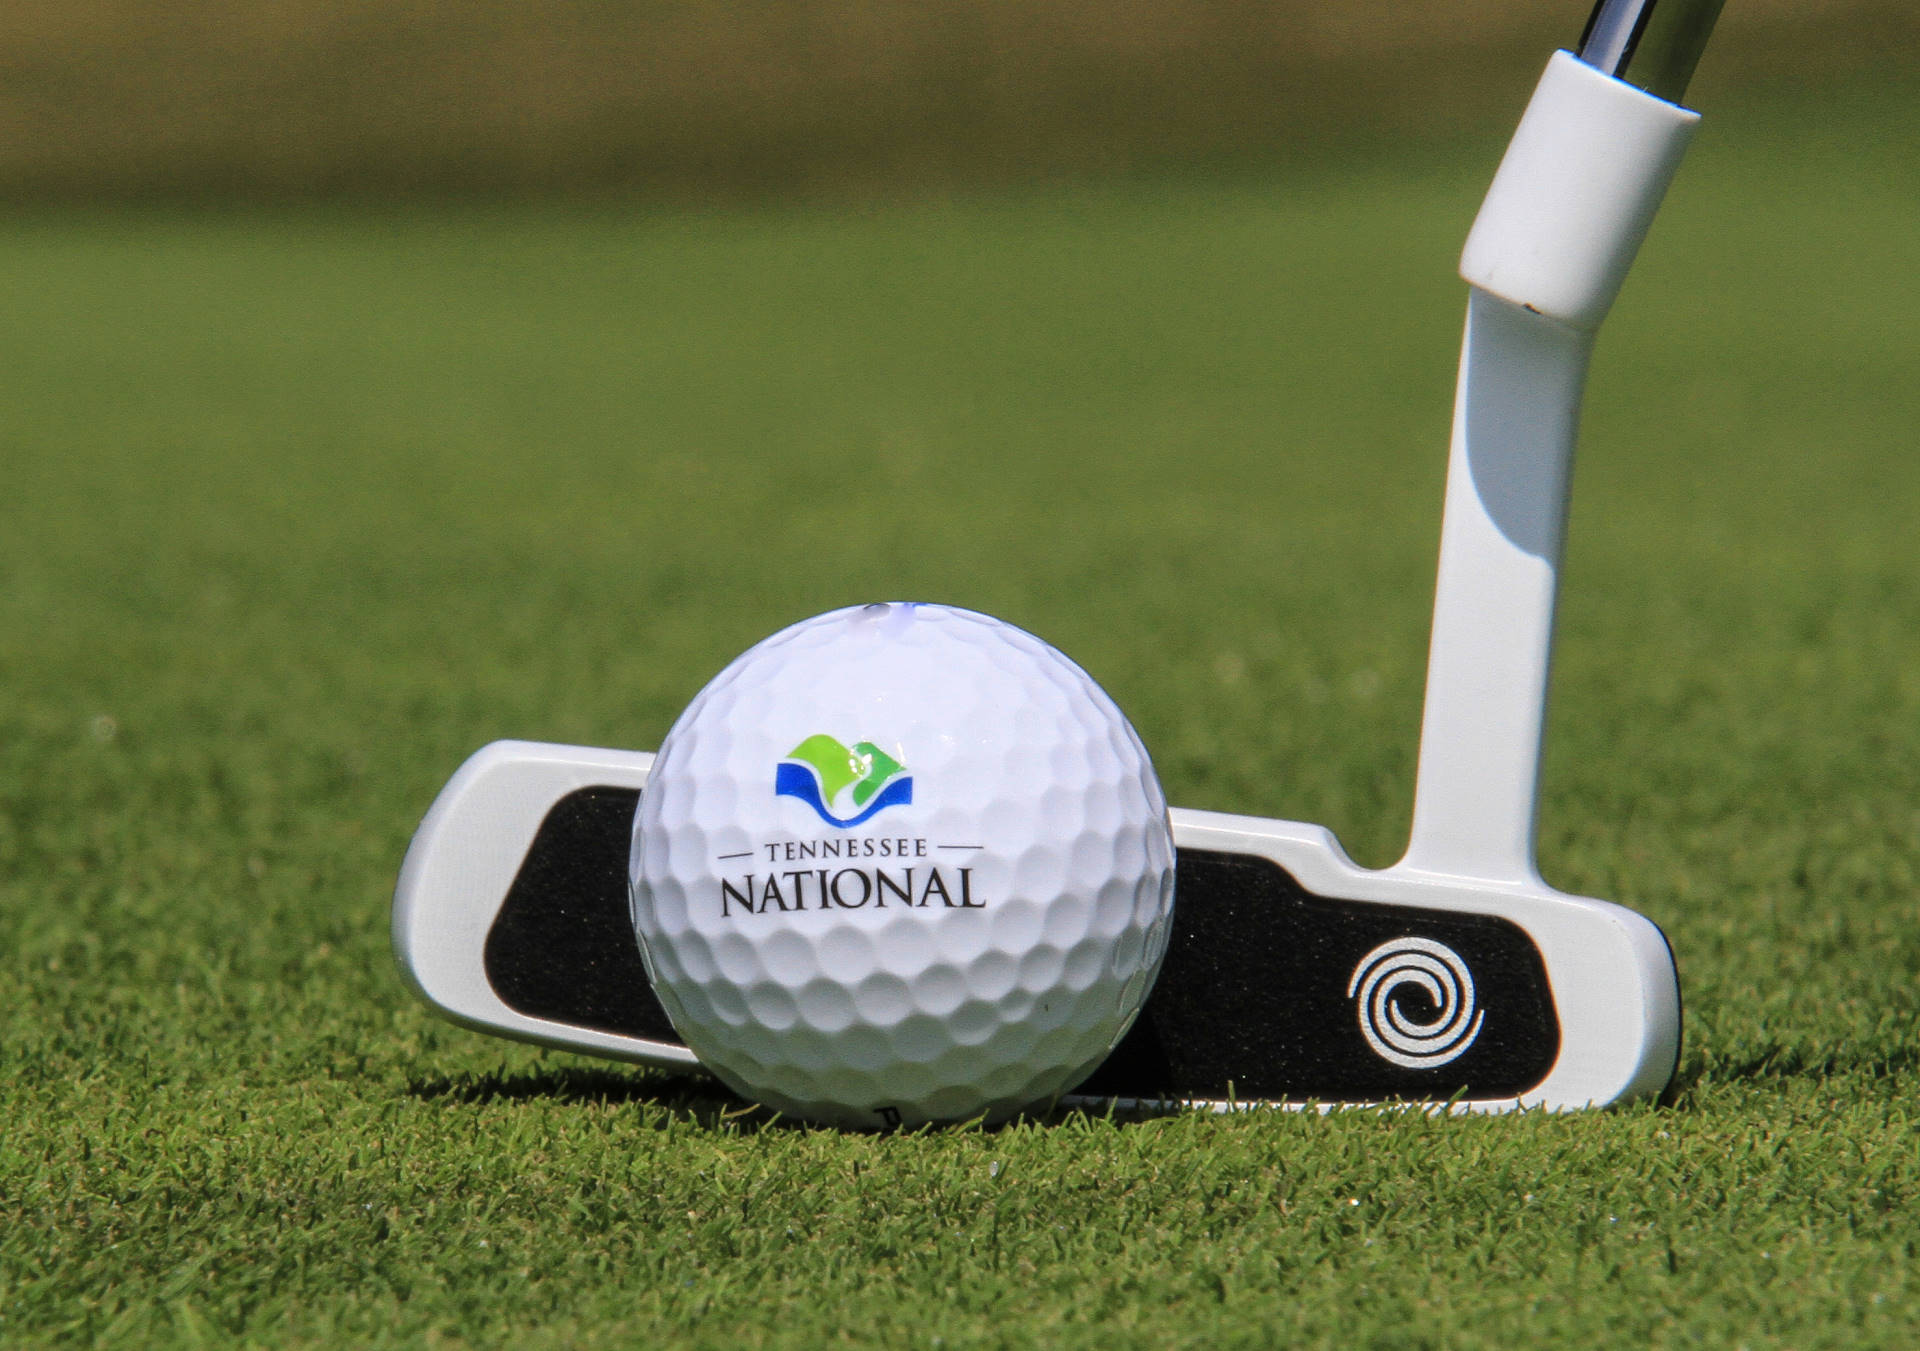 Tennessee National Logo on a Golf Ball with Golf Club in Background